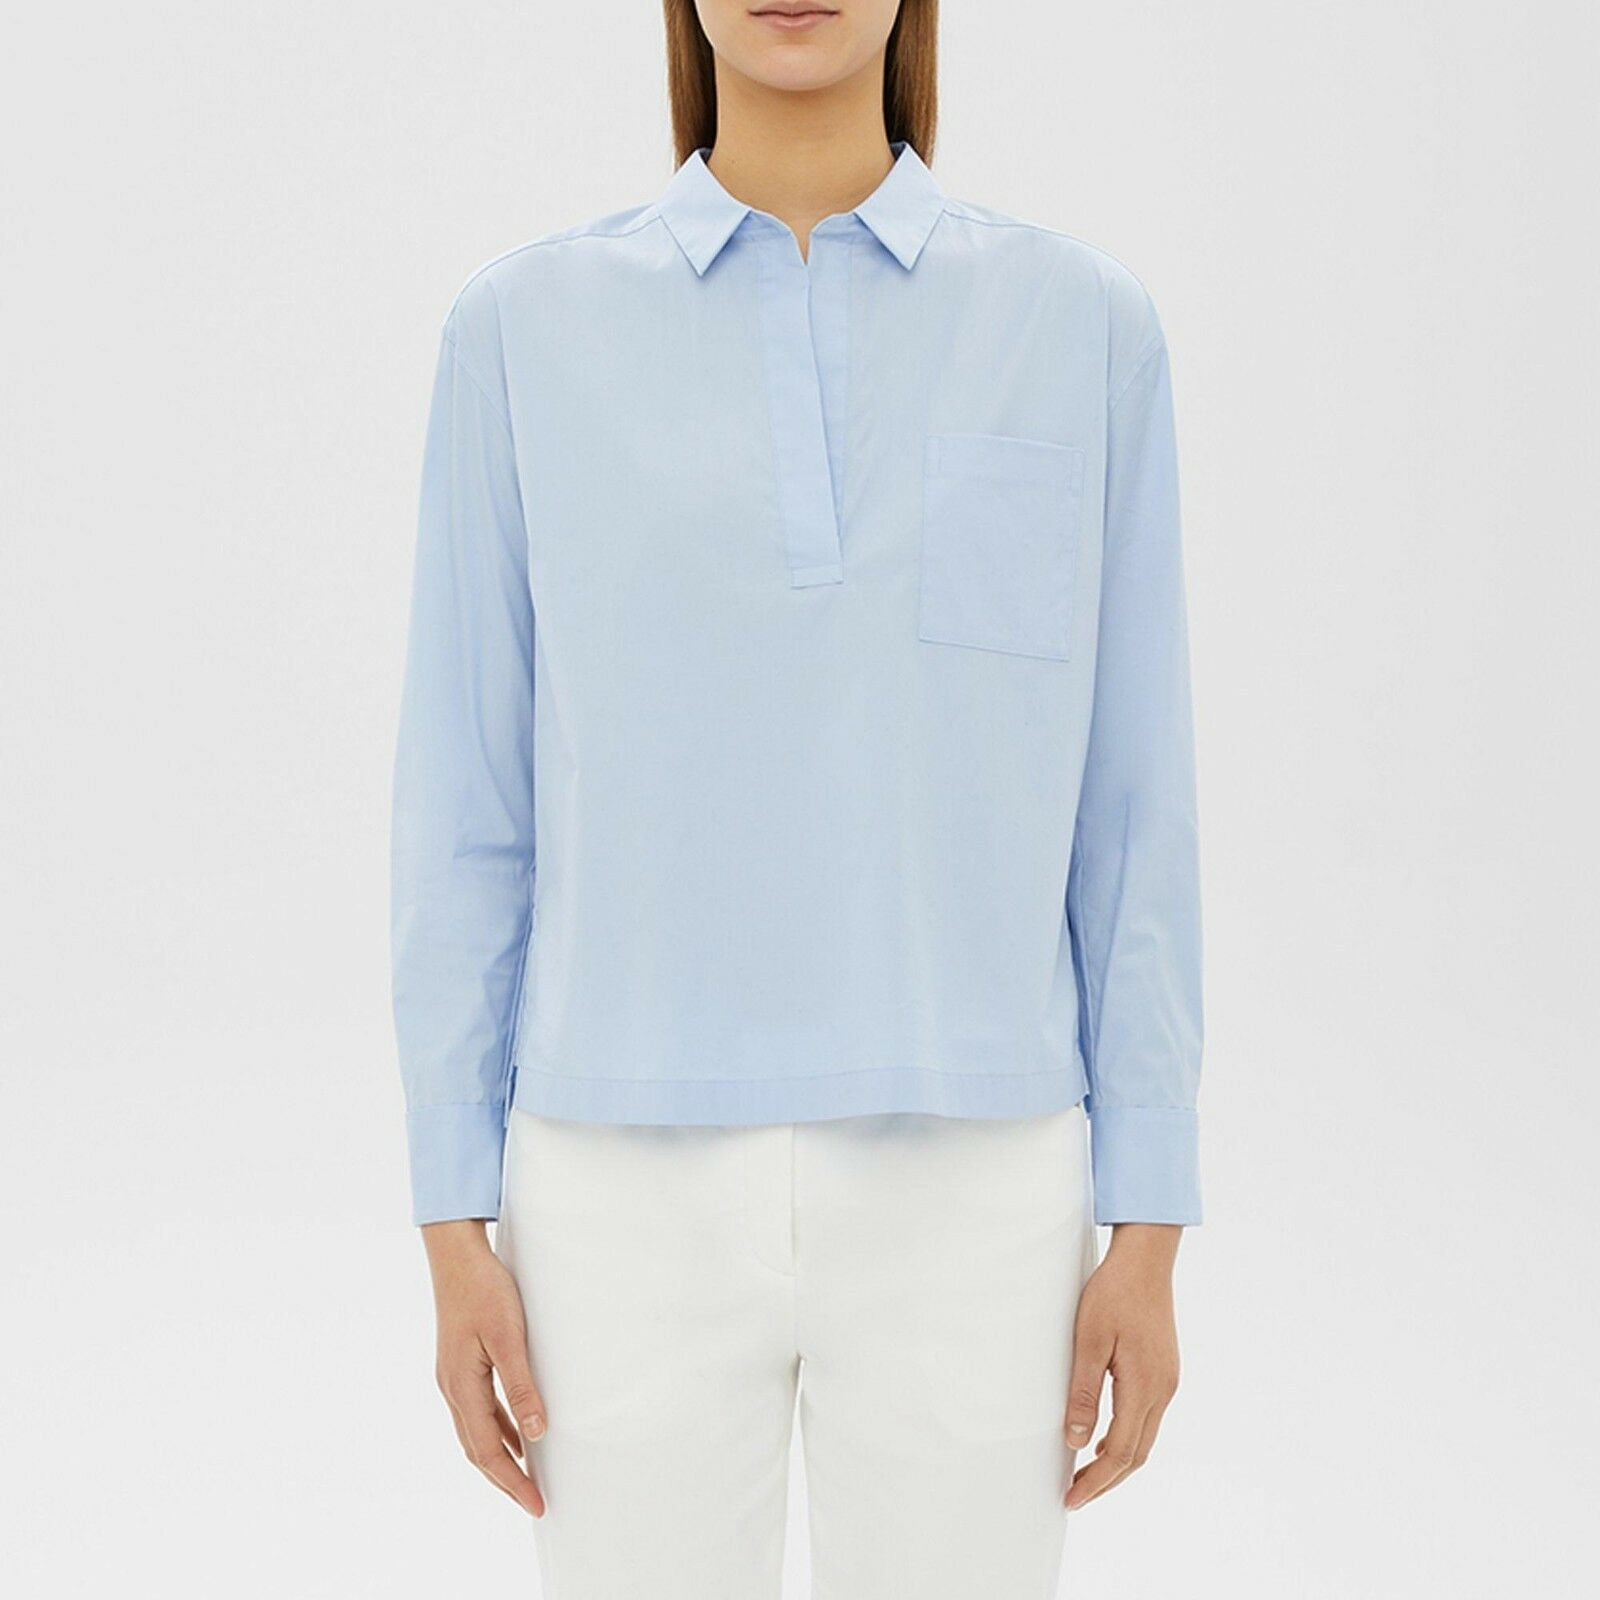 THEORY Larkspur Blau Cahliway Shirting Wide Placket Popover Top Sz L NWT